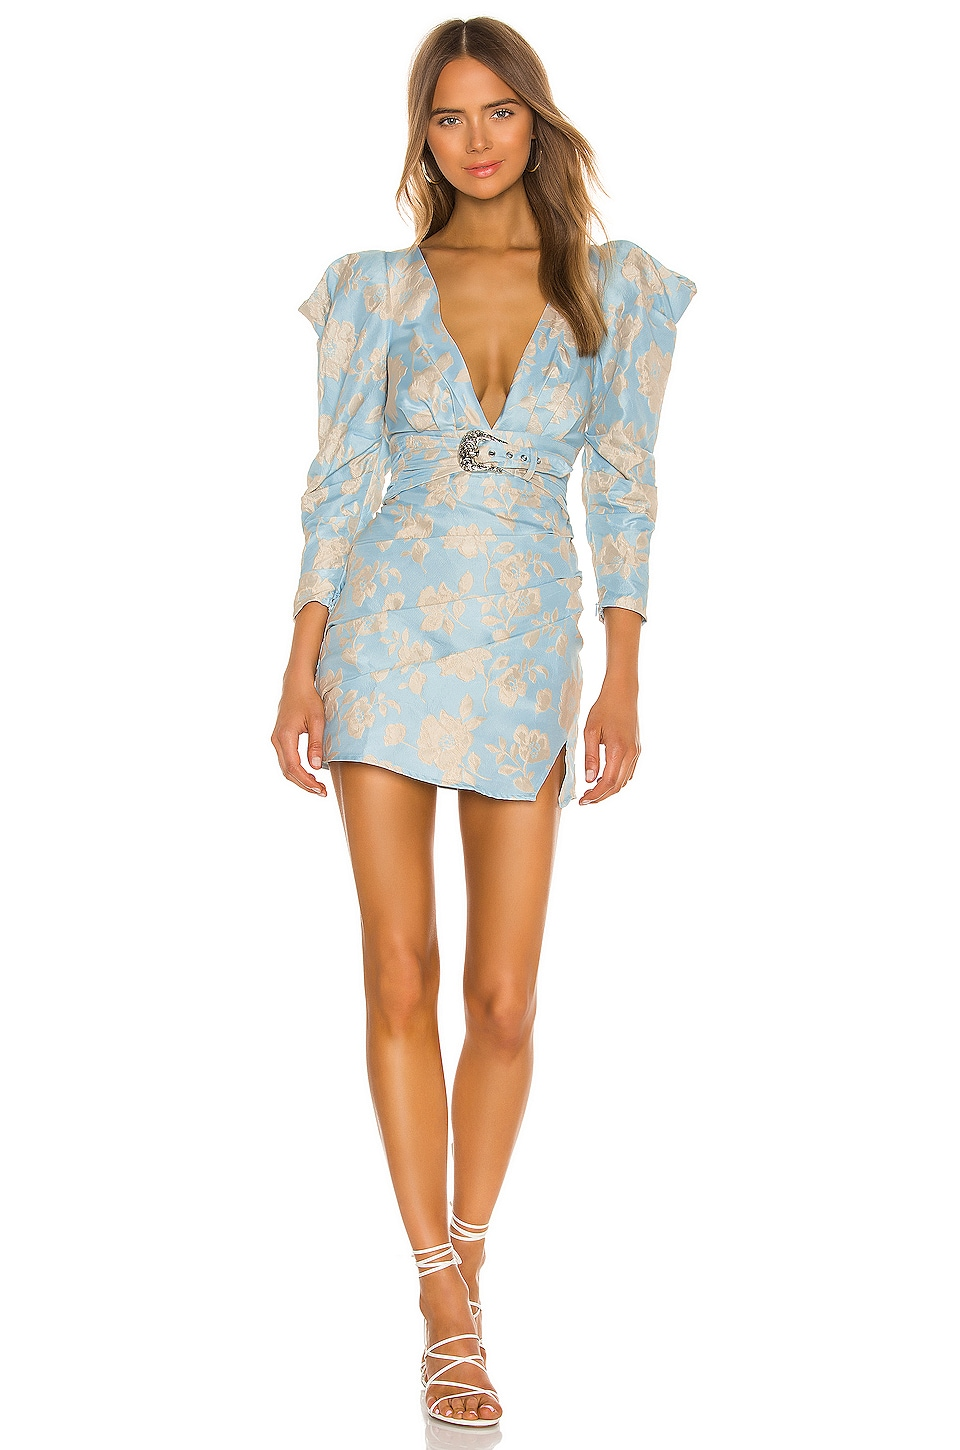 Reese Power Shoulder Mini dress             For Love & Lemons                                                                                                       CA$ 369.67 9